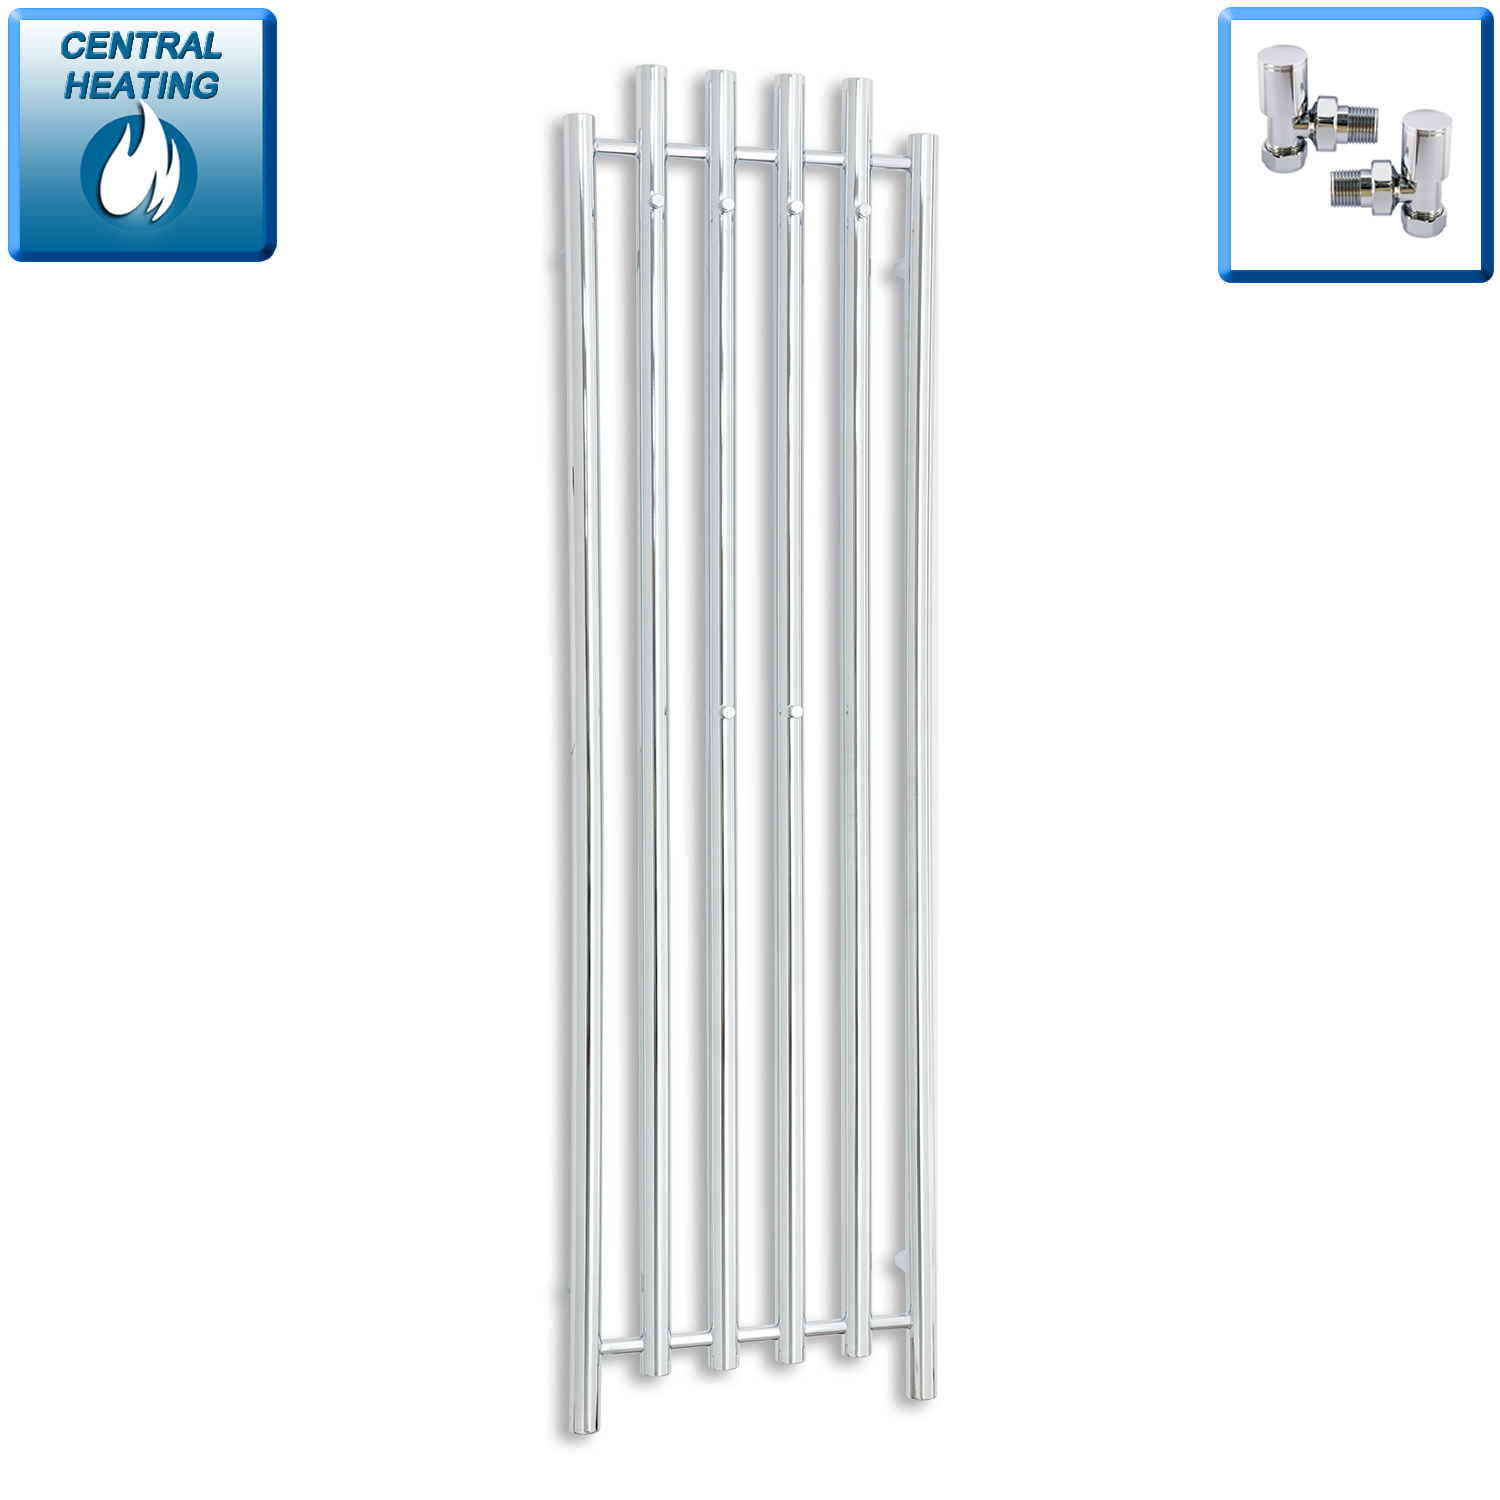 450mm Wide 1600mm High Chrome Towel Rail Radiator With Angled Valve